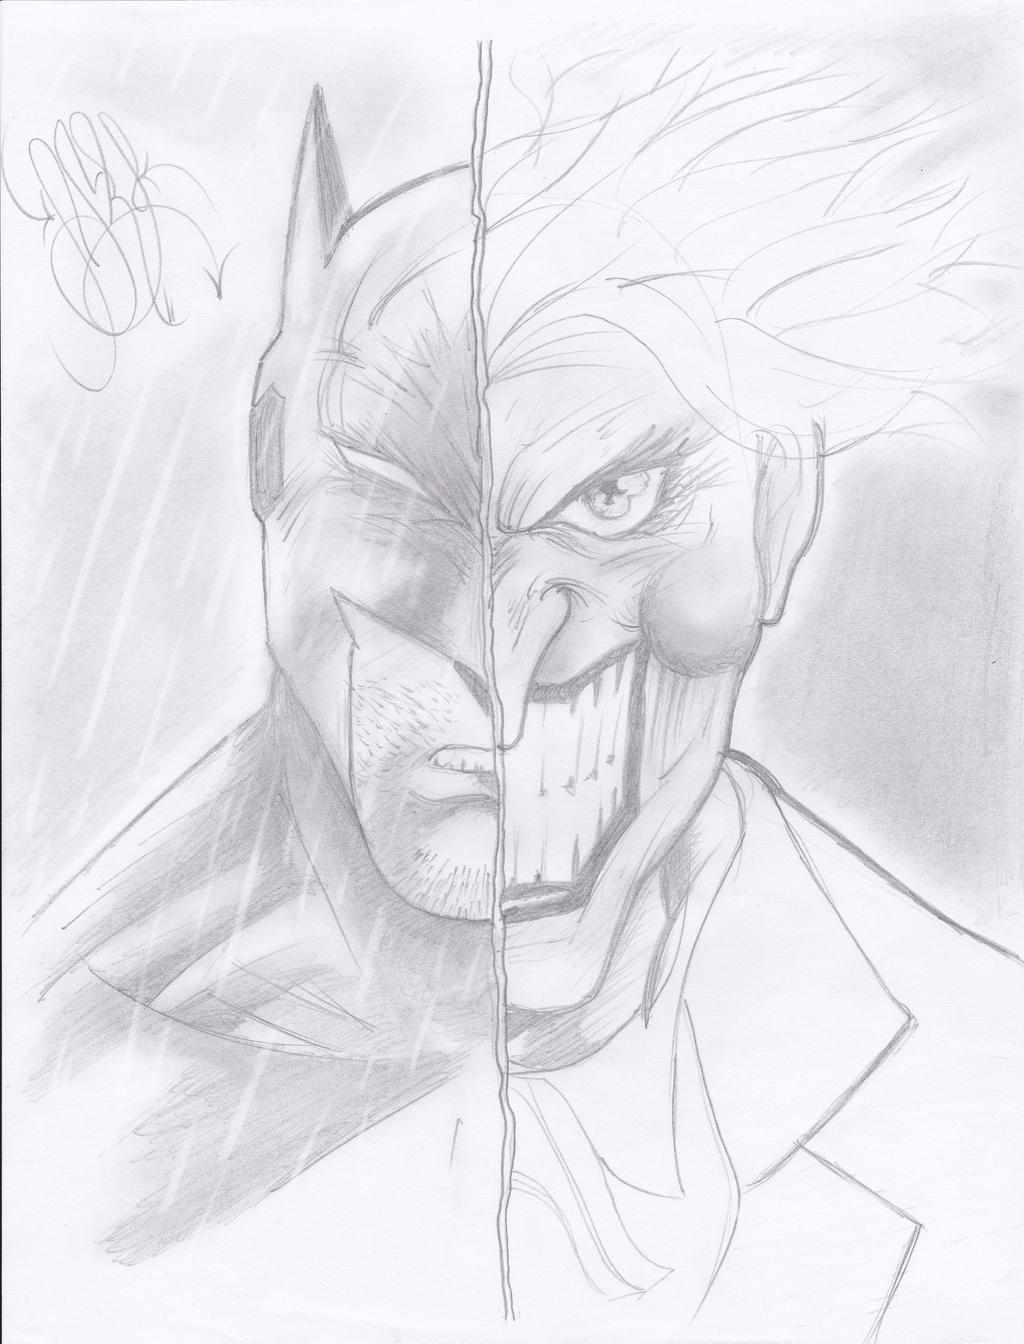 pencil draw batman and joker by naruto2312 on DeviantArt